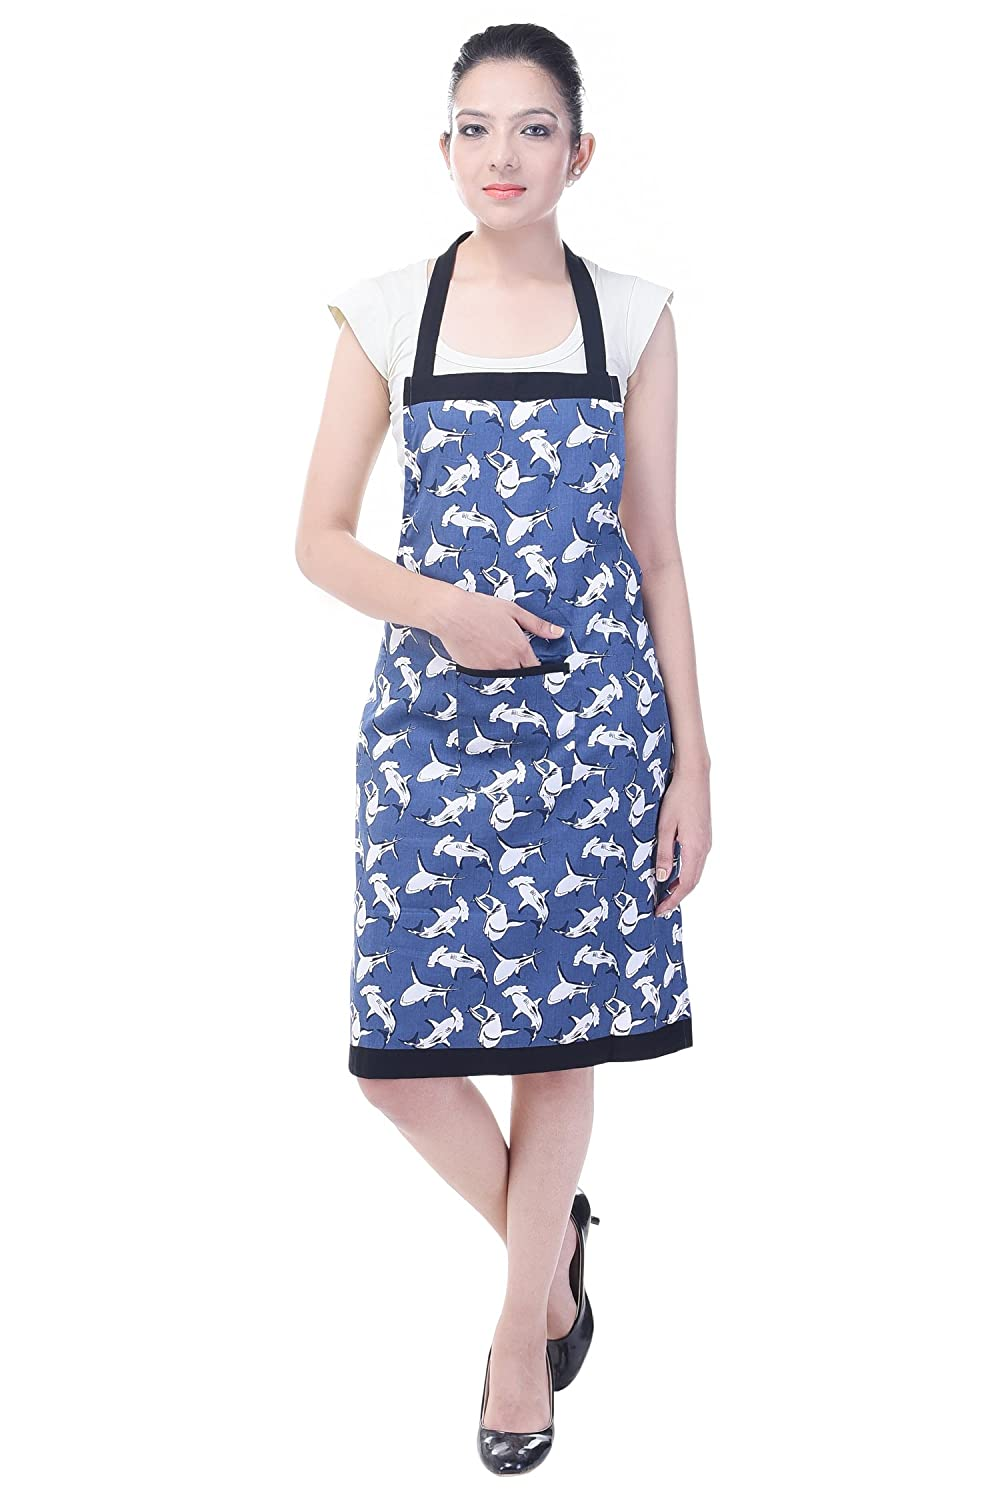 d8011121f4d Buy Switchon 30x23-inch Cotton Waterproof Printed Kitchen Apron  (Multicolour) Online at Low Prices in India - Amazon.in